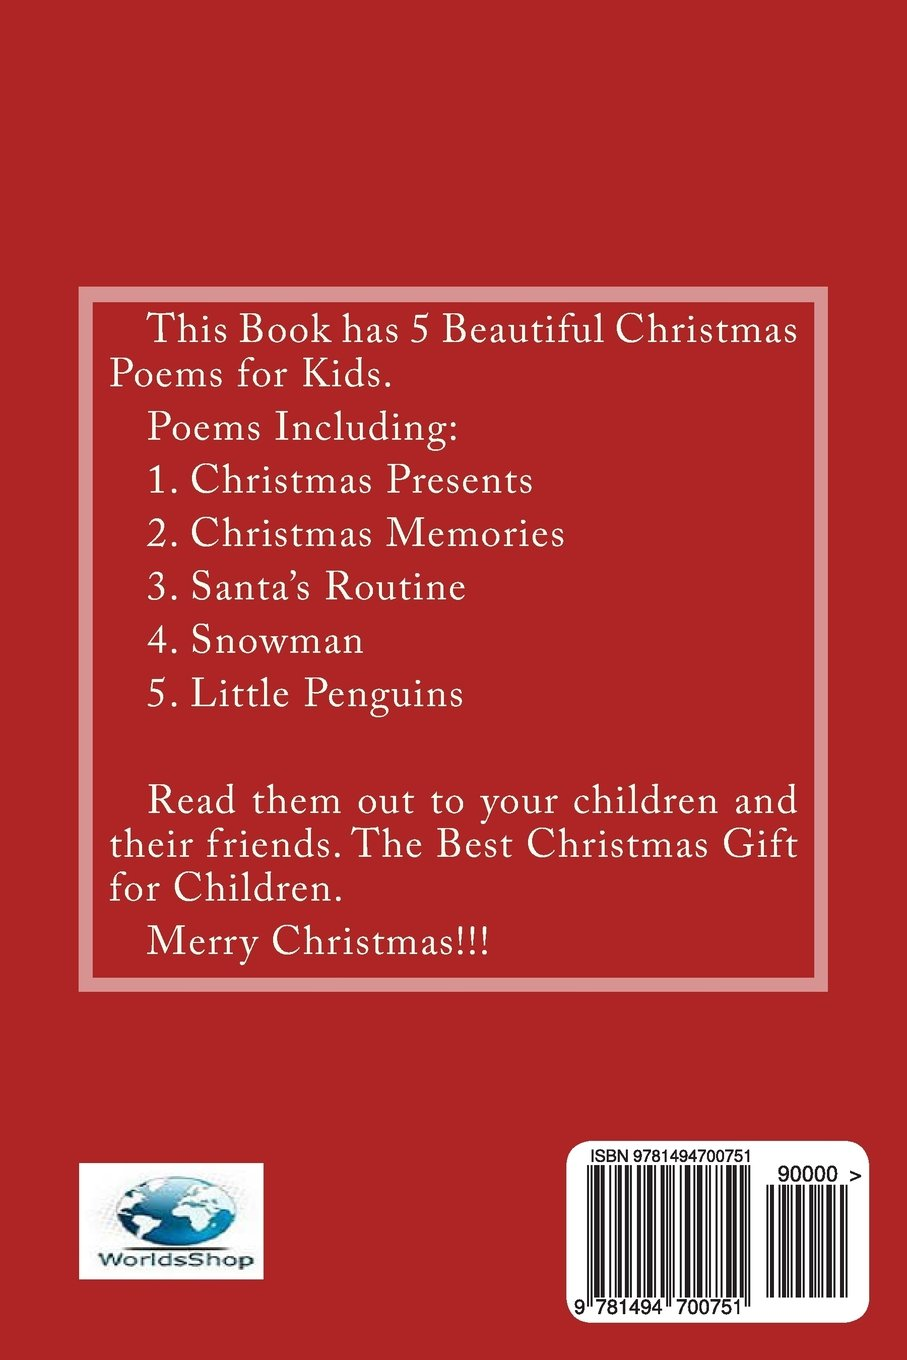 Christmas Poems for Kids: Jason Lewis, Worlds Shop: 9781494700751 ...